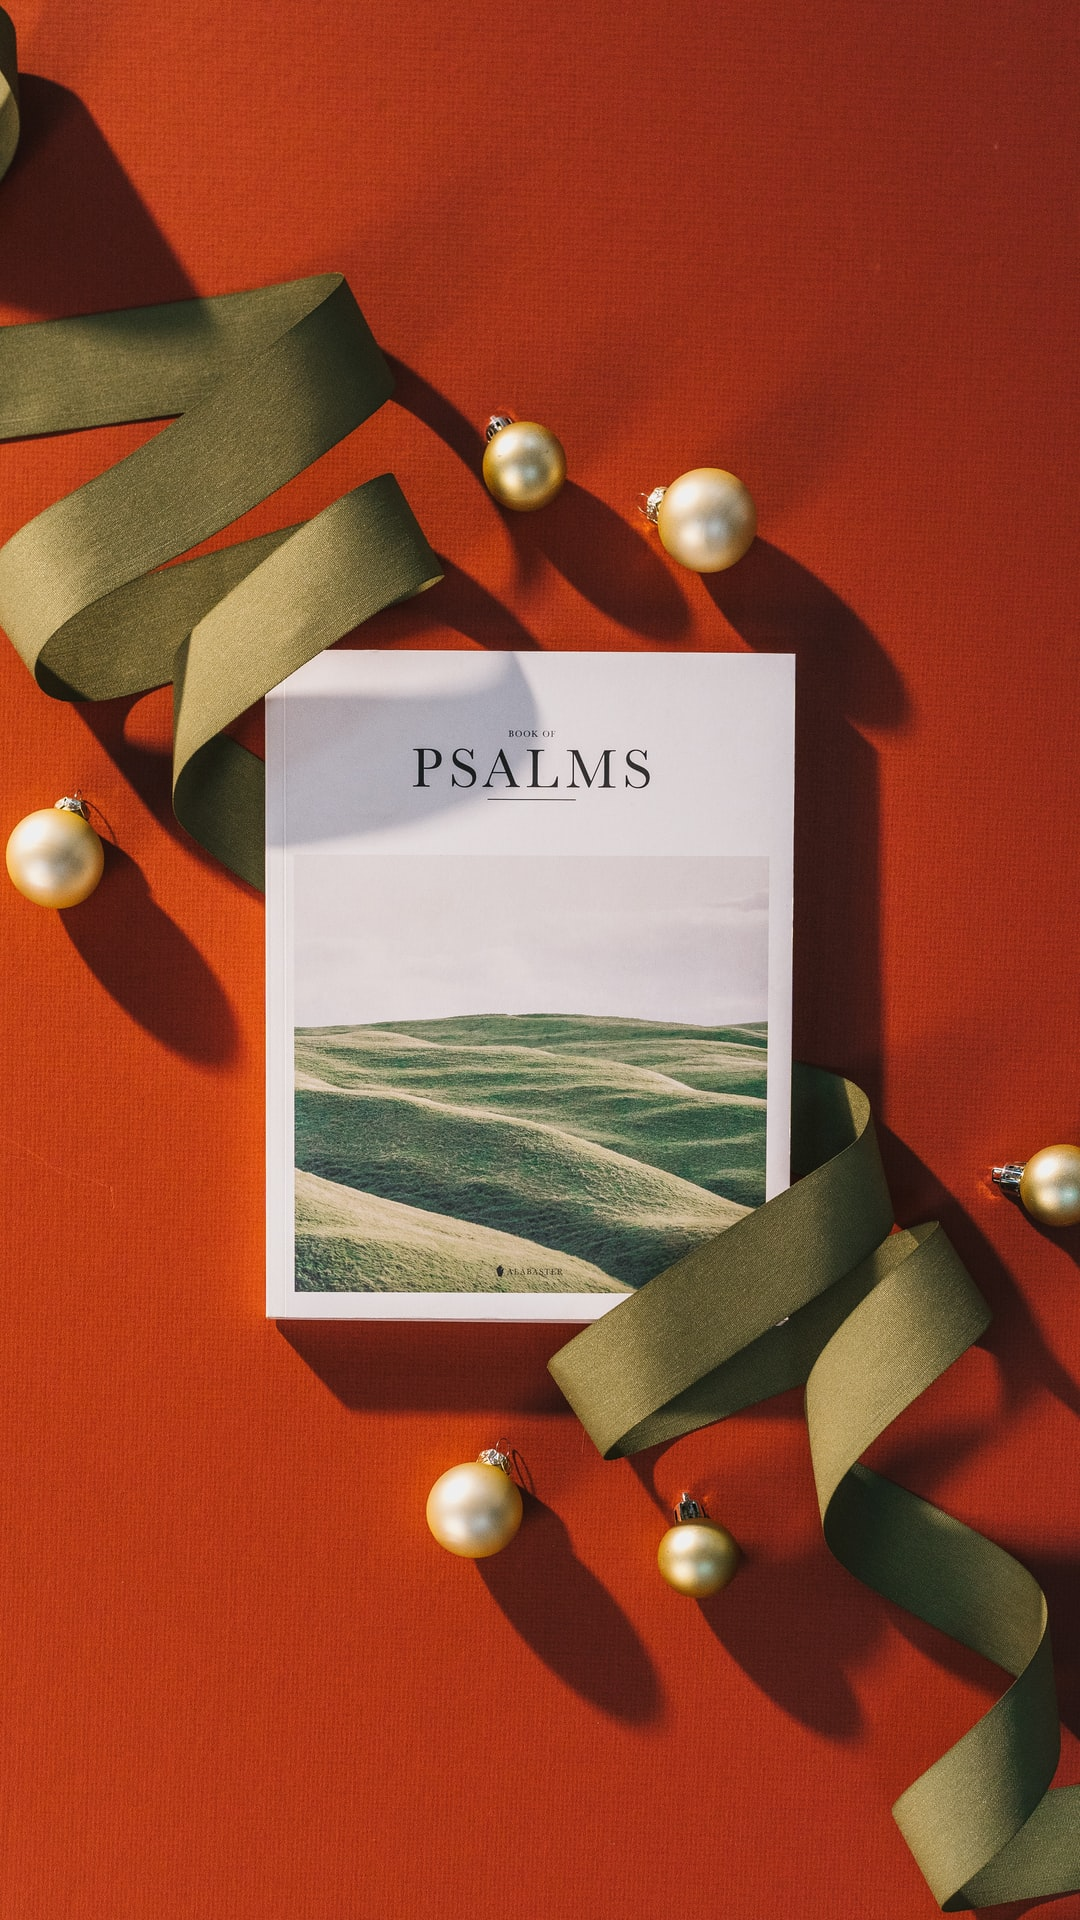 Book of Psalms with Christmas green ribbon and ornaments on a red background